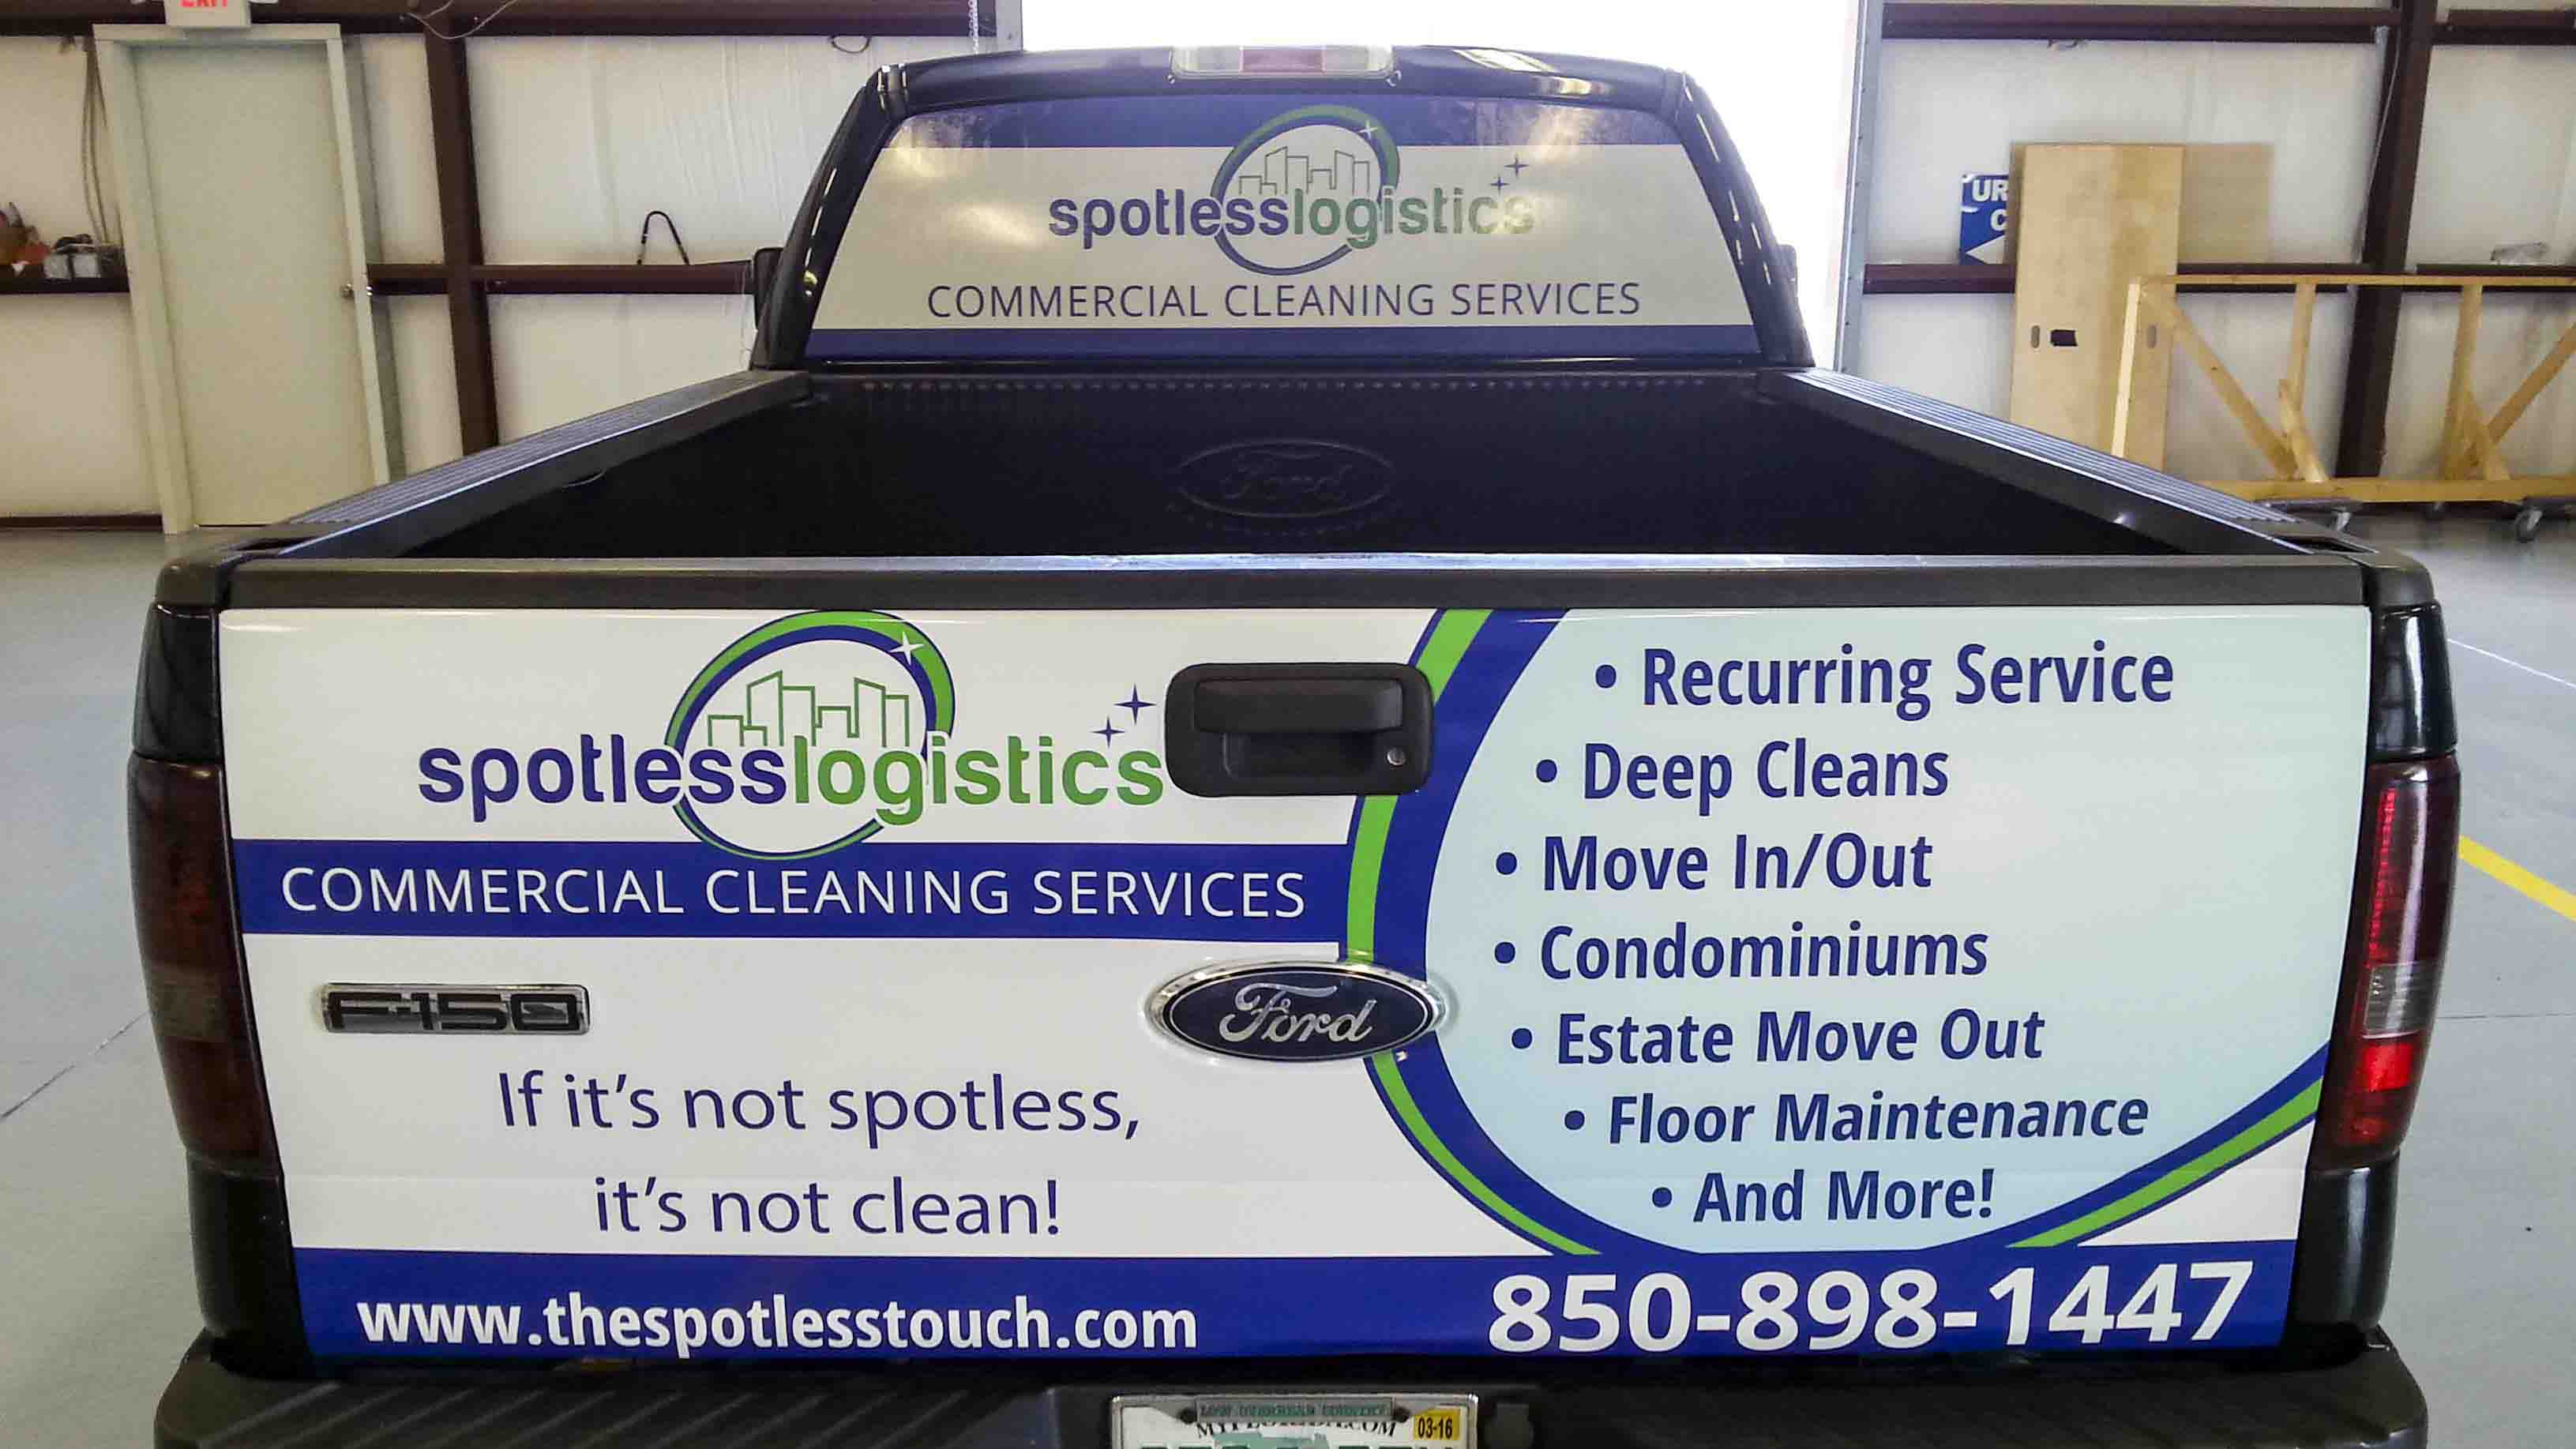 Pensacola Sign - Vehicle Graphics - Graphics for Spotless Logistics